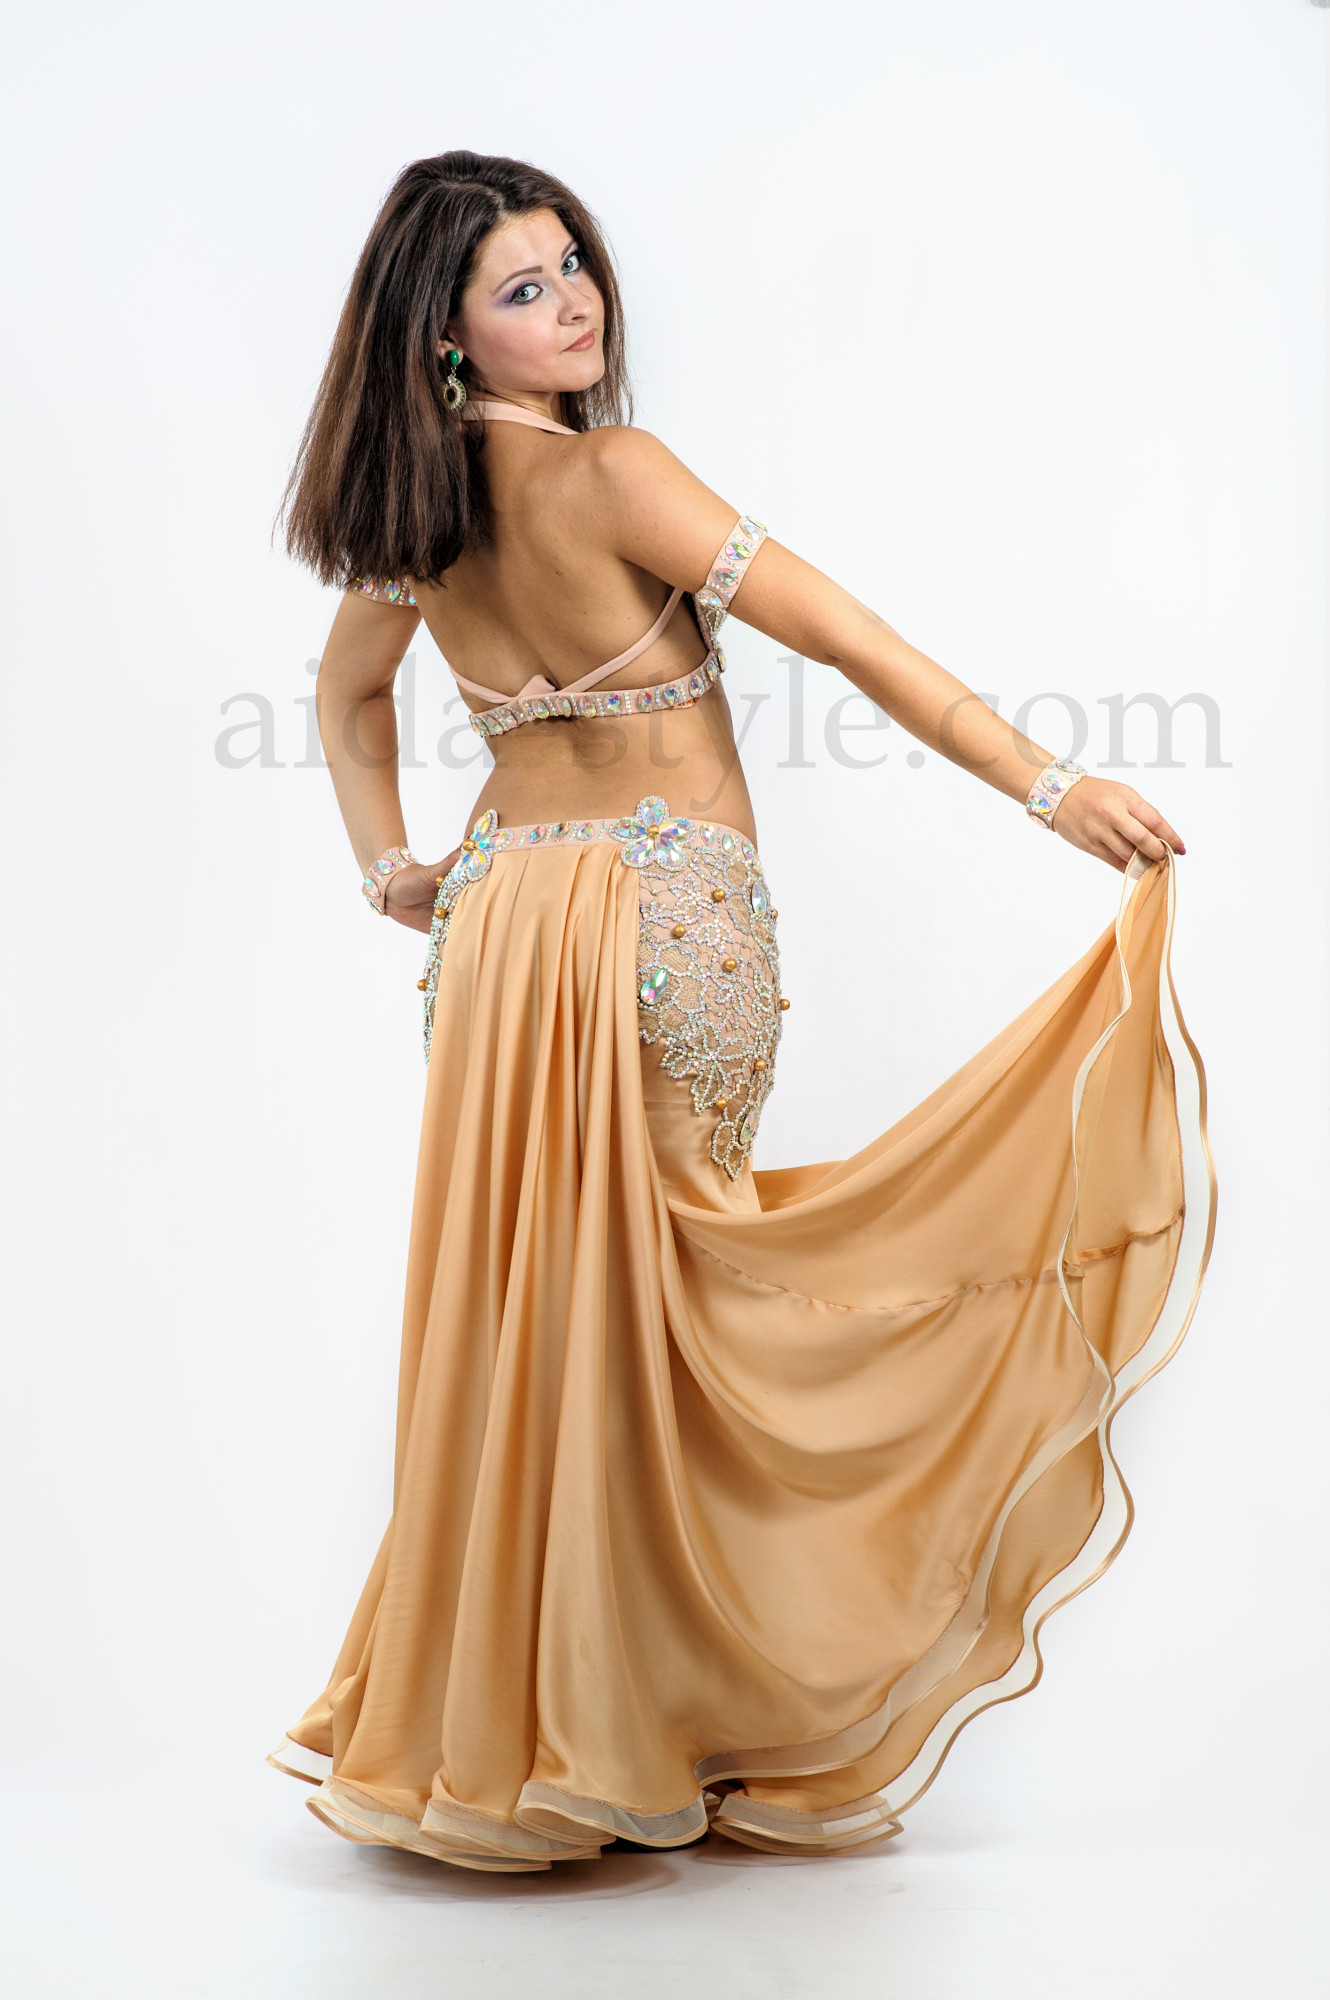 Golden custom made proffessional belly dance costume with rich decoration and a tail on the back